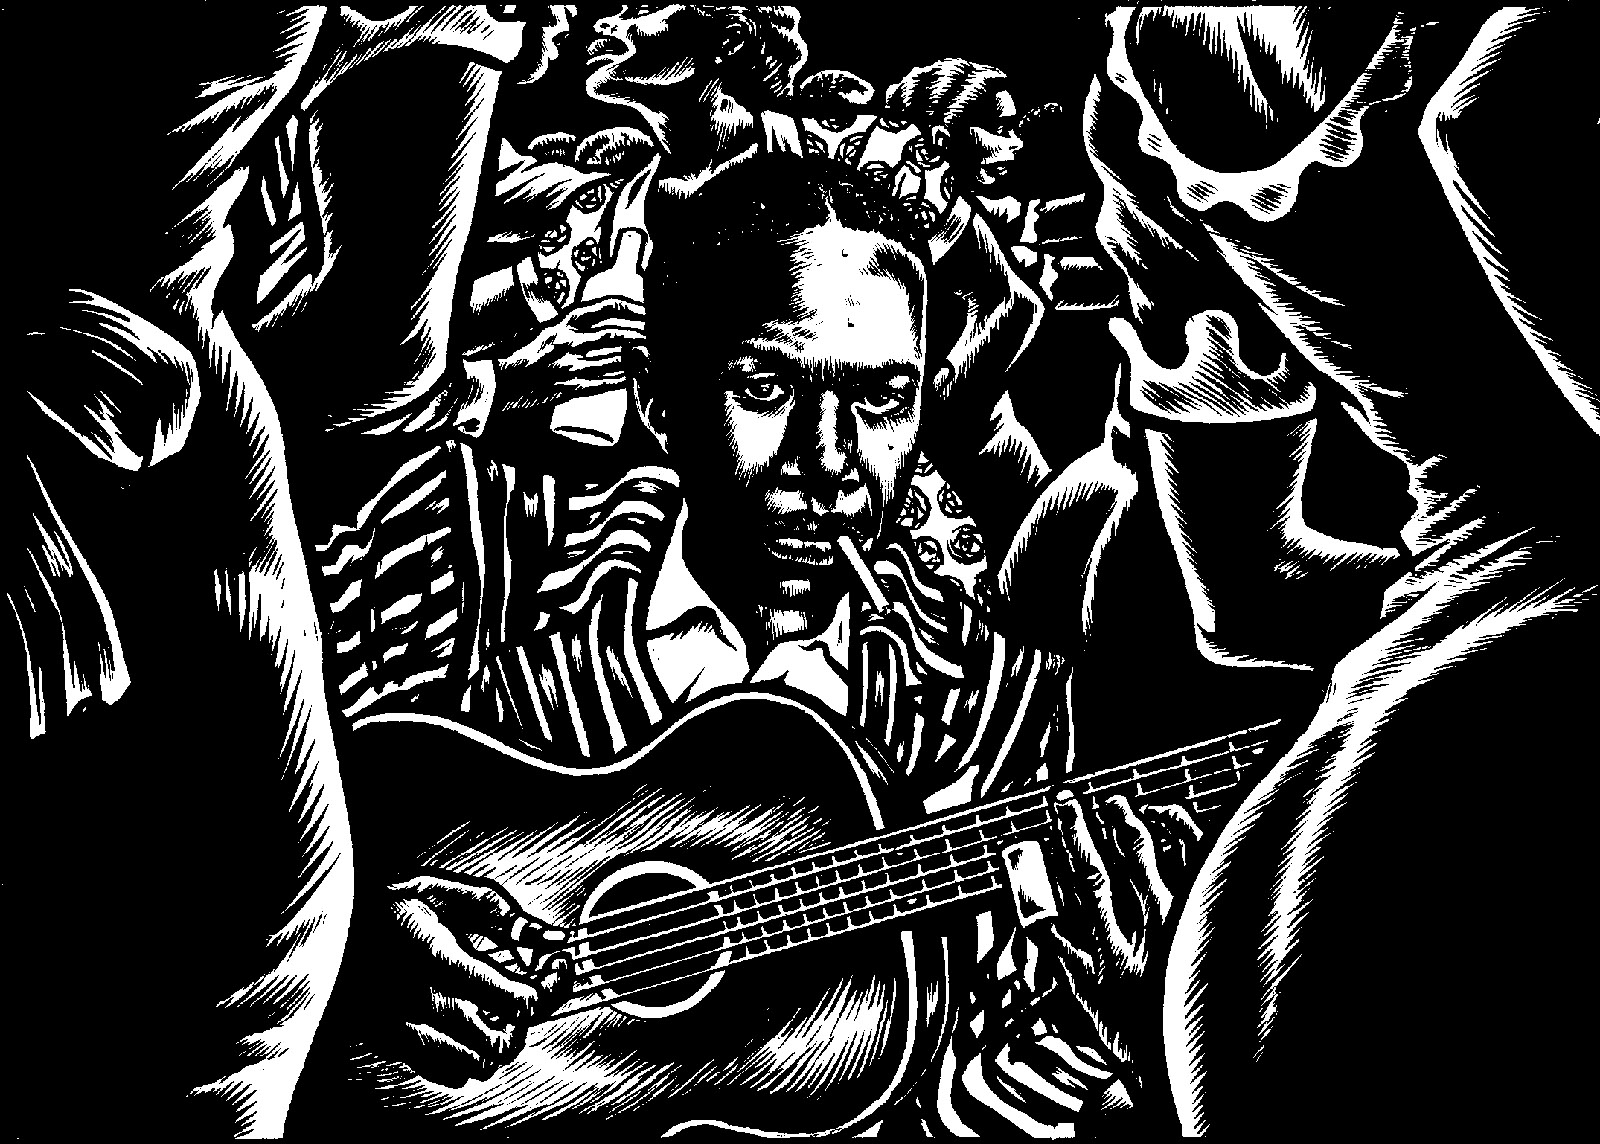 Robert Johnson; from Mezzo and J.M. Dupont's graphic novel Love in Vain